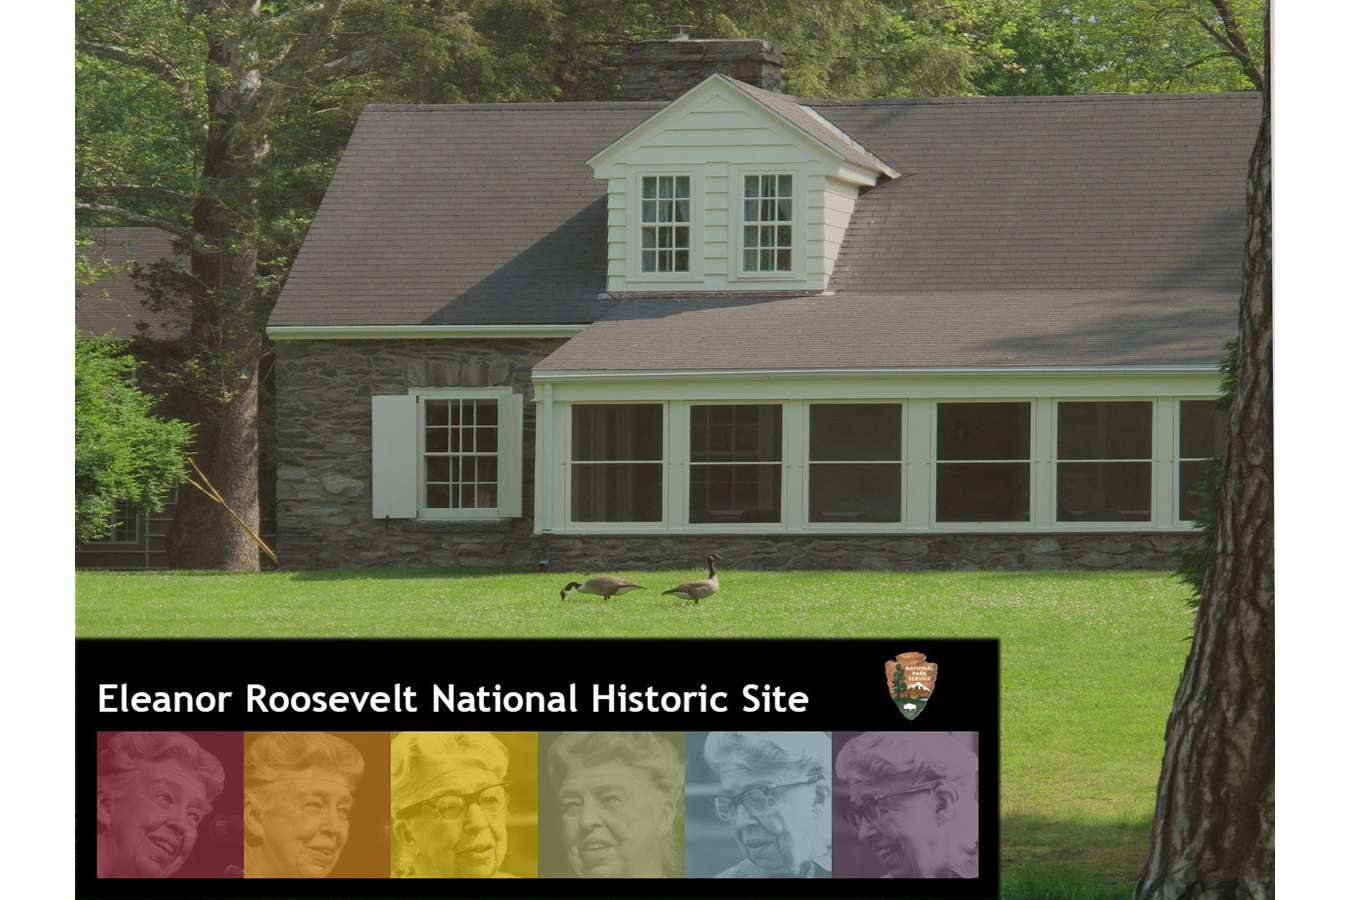 ELRO 1P : Eleanor Roosevelt's Val-Kill is the only National Historic Site dedicated to a first lady